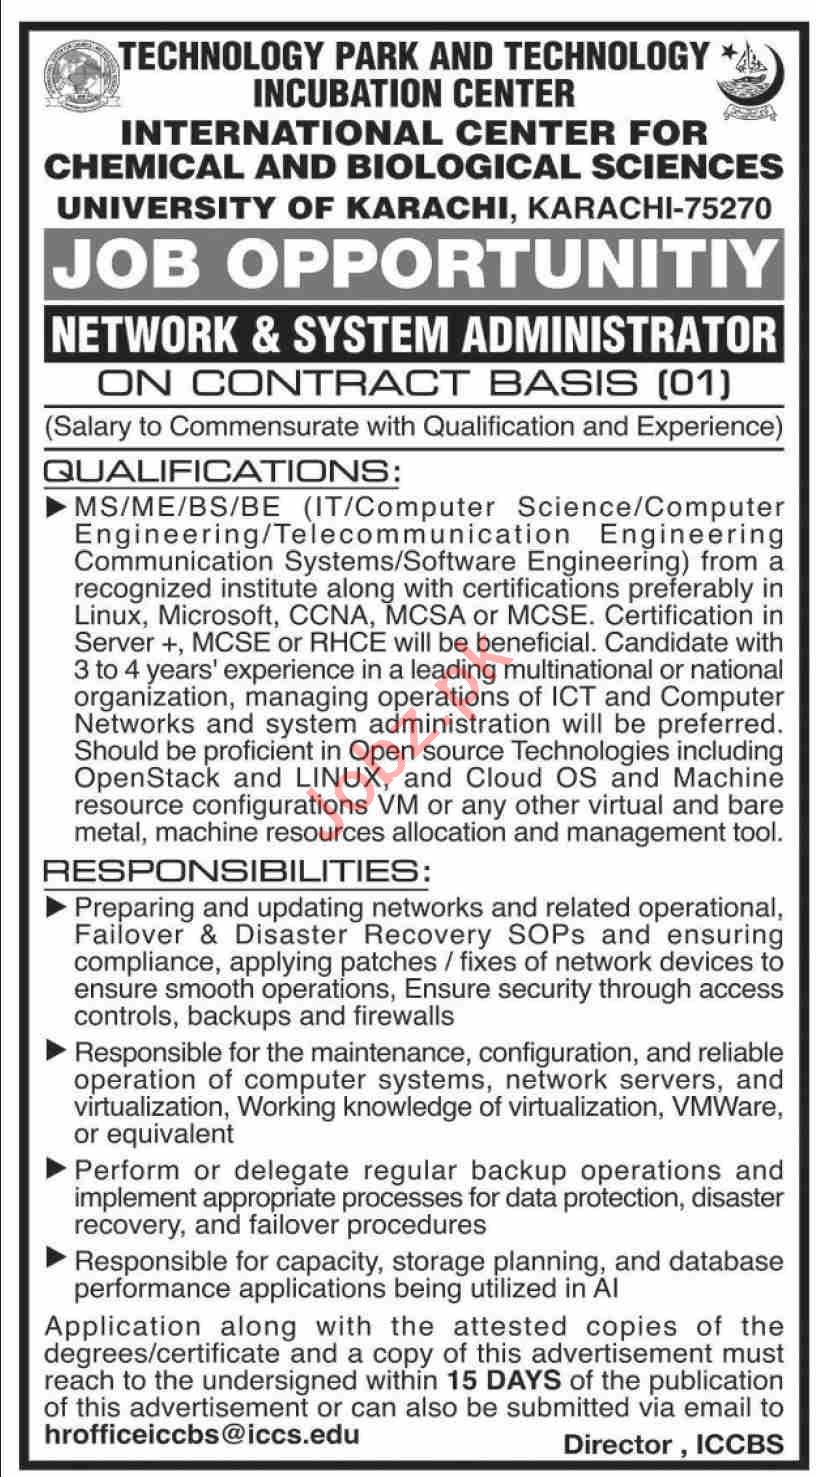 International Center for Chemical & Biological ICCBS Jobs